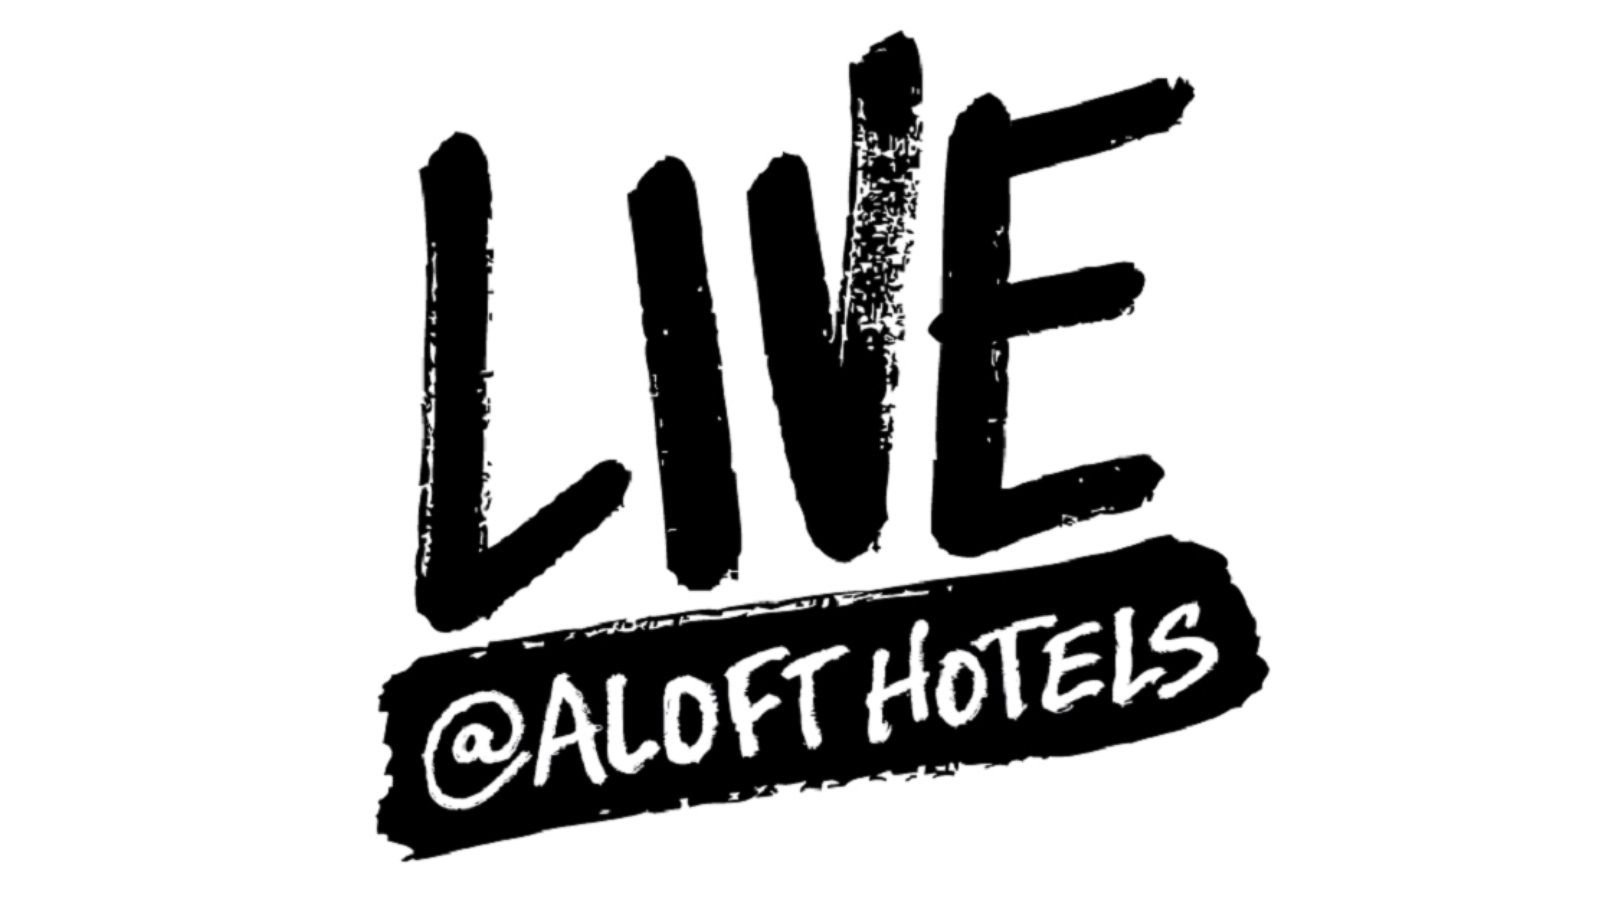 Bars Downtown Austin - Live At Aloft Hotels